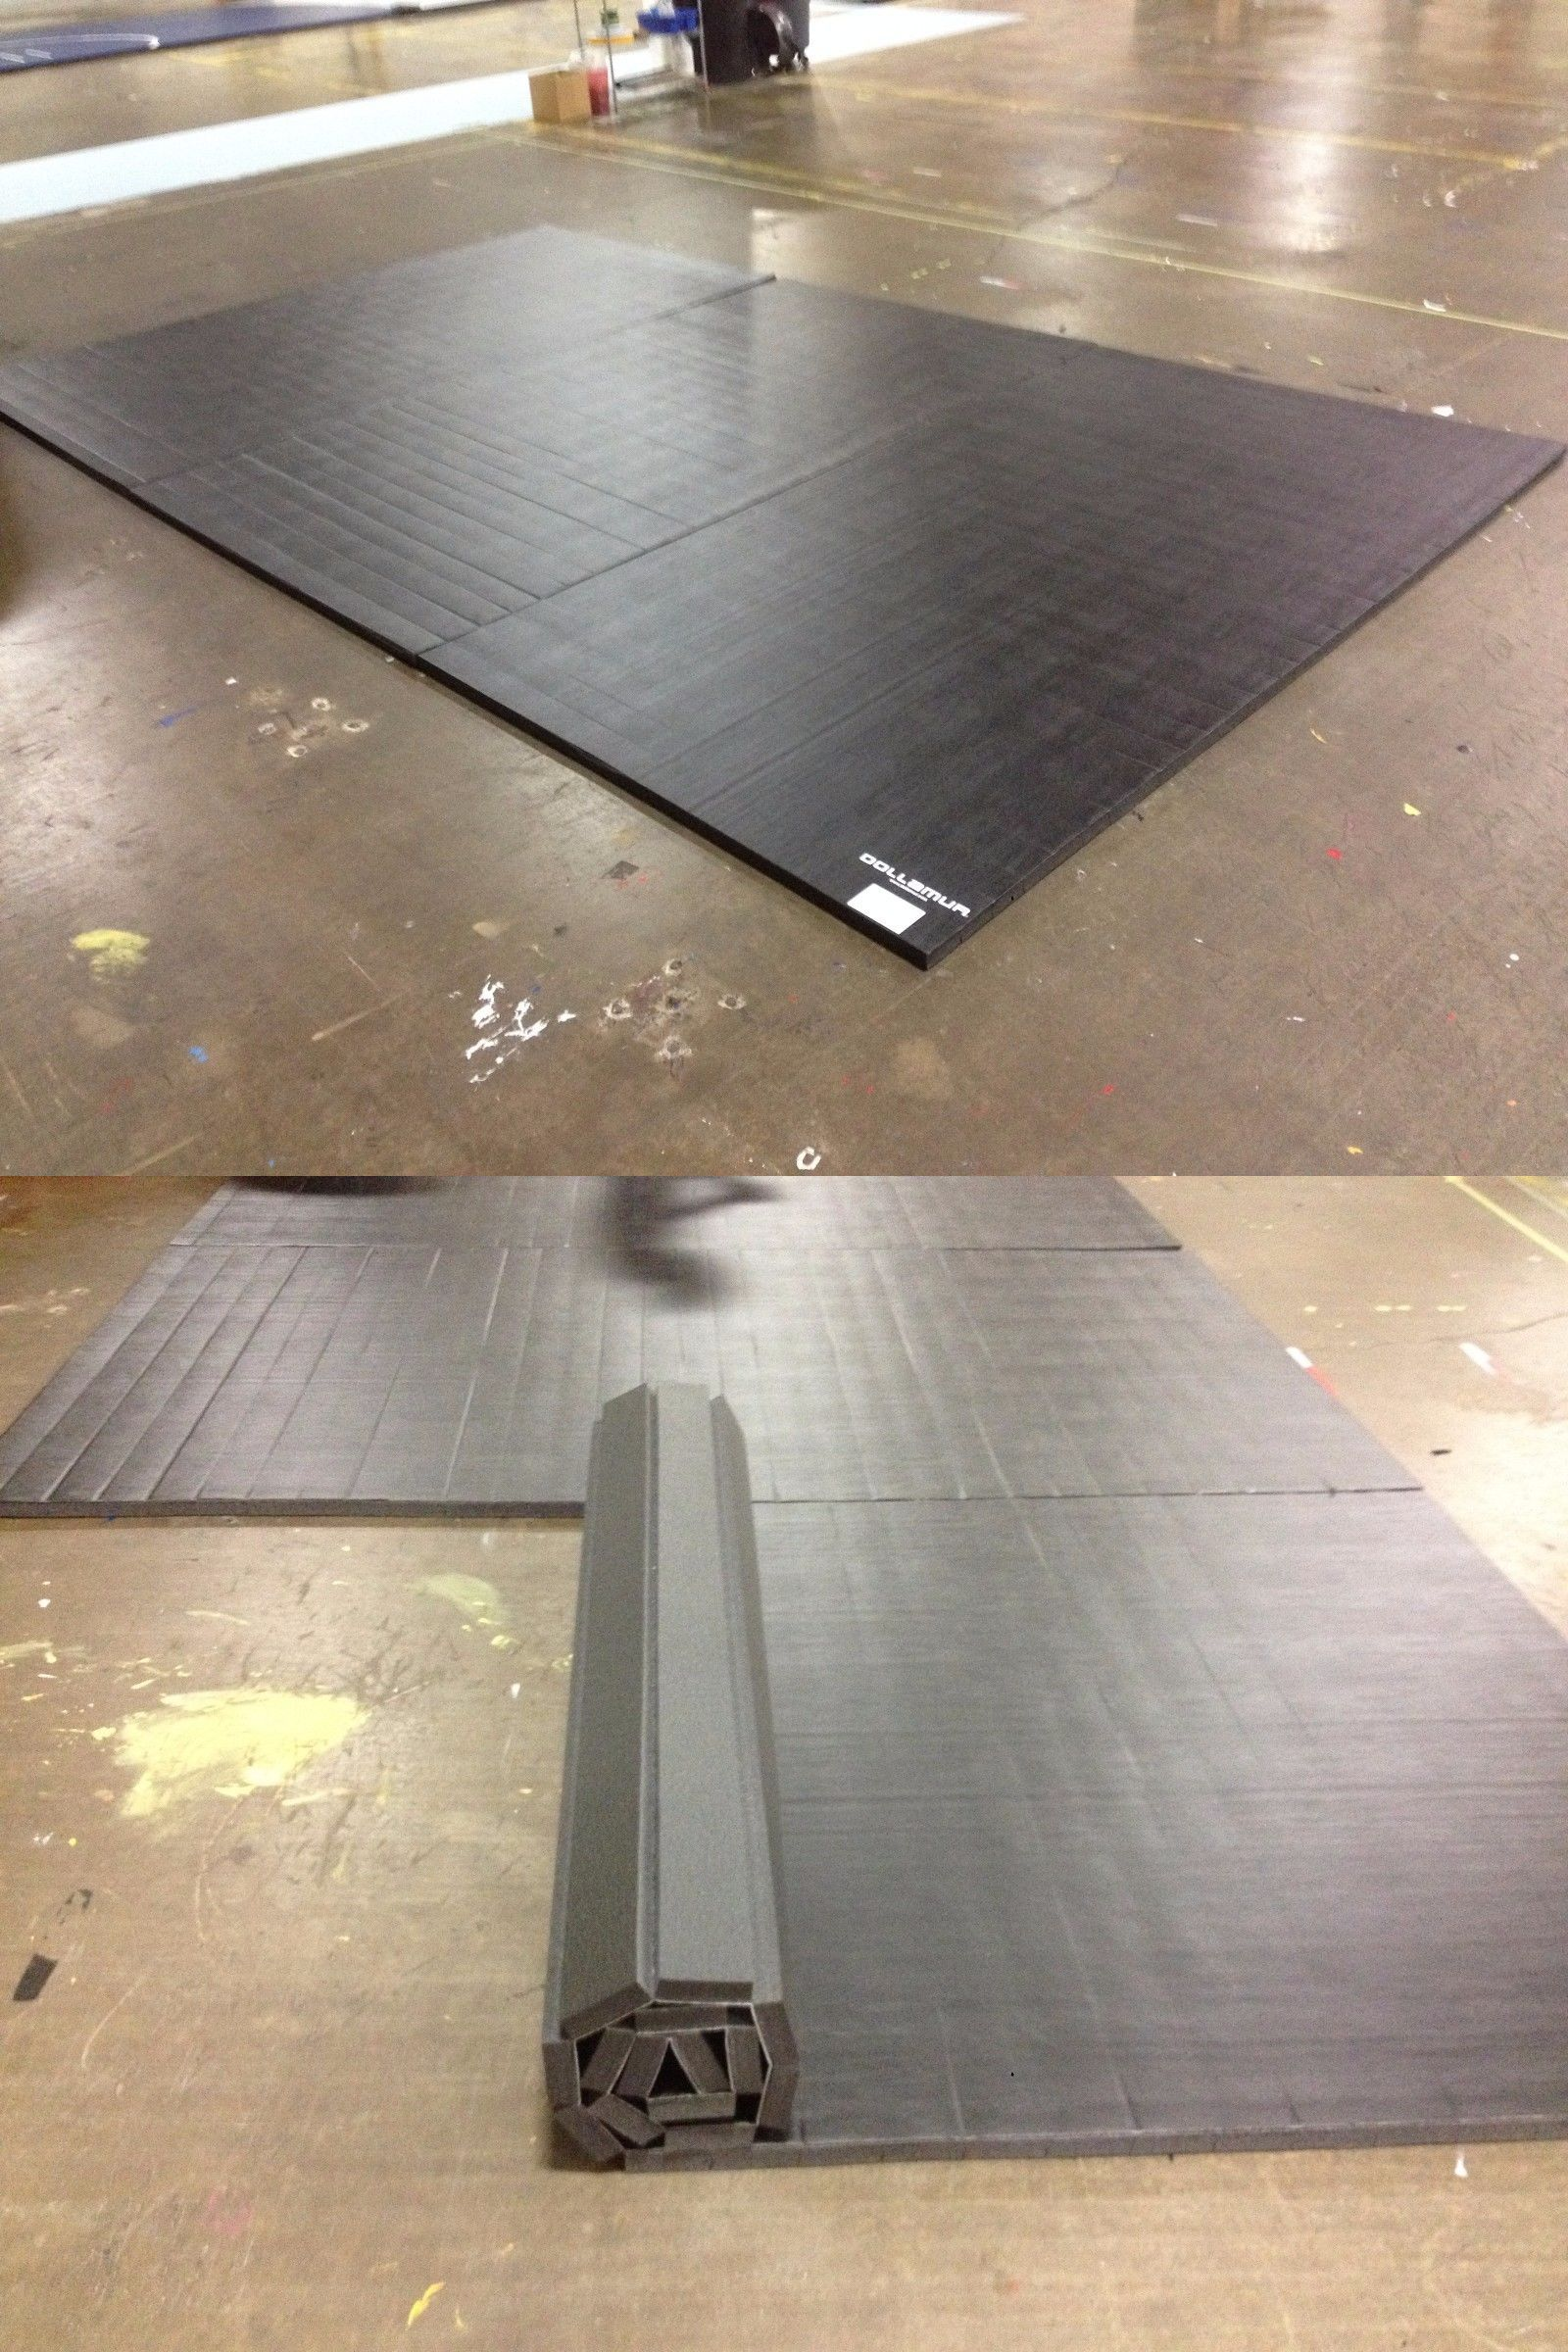 double lift anchor mills on mats safe mountville installation how instructions the products truck sided mat to europe install accessories tape